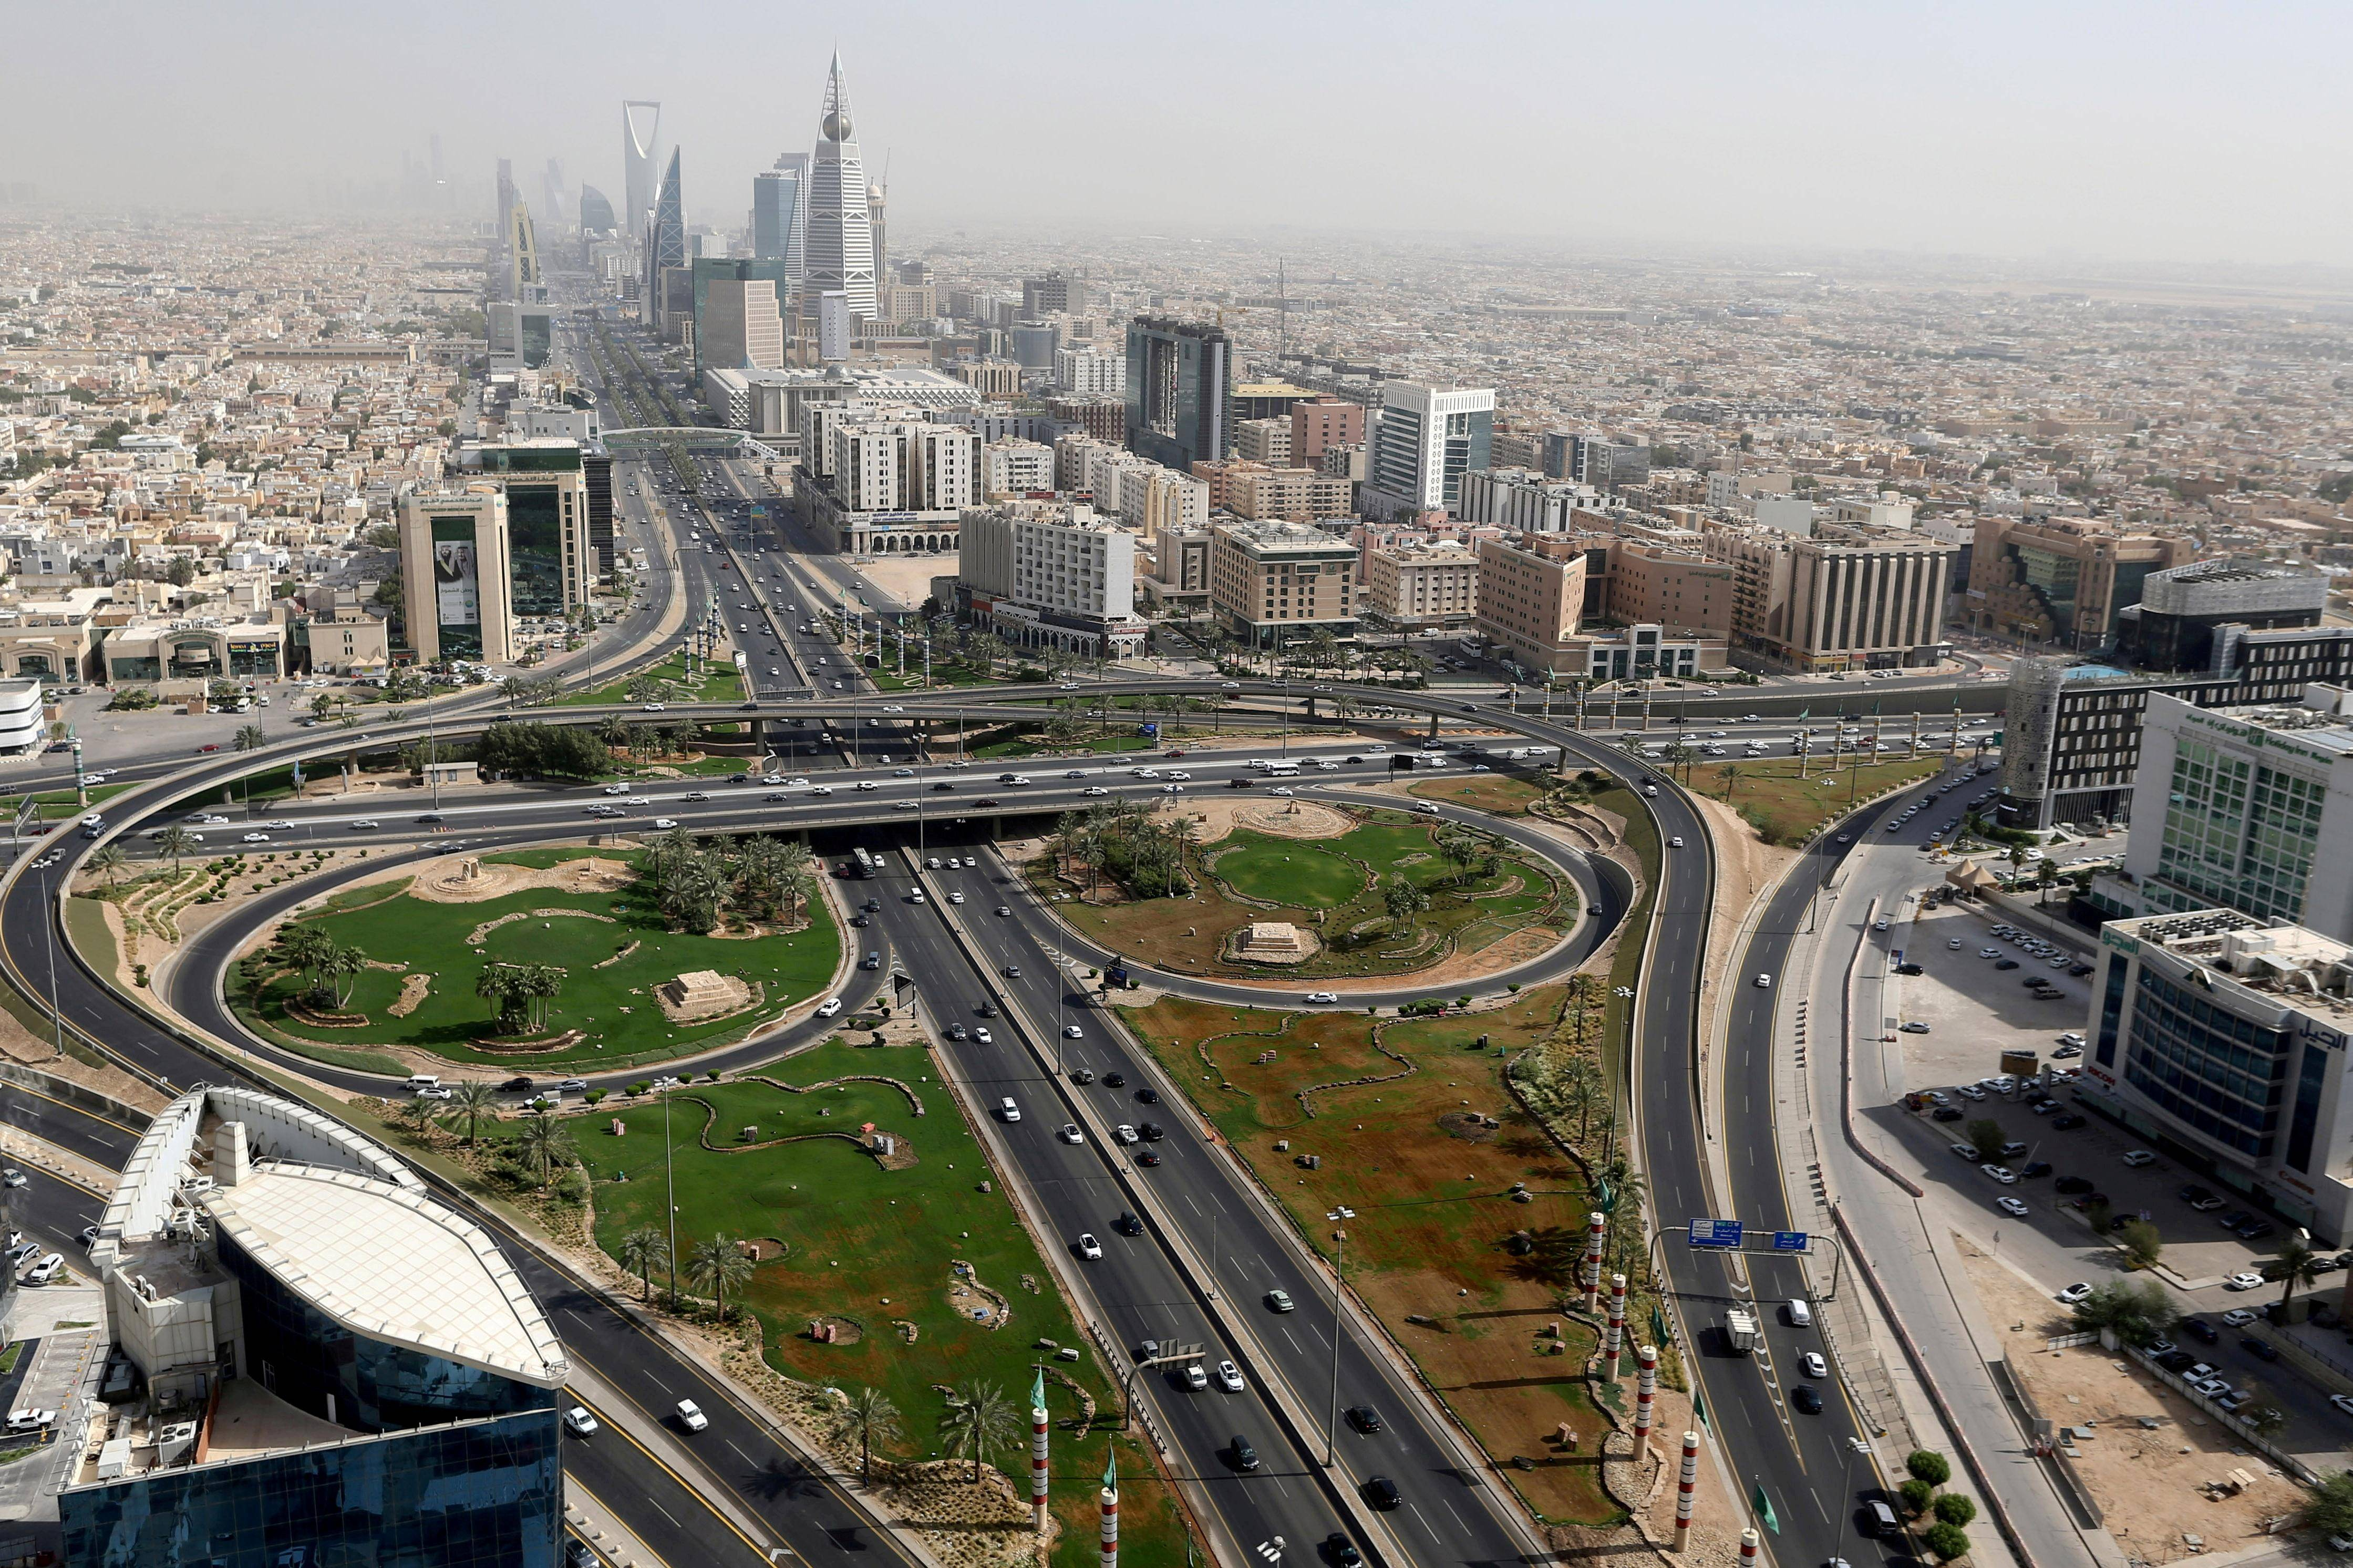 Saudi Arabia aiming for net-zero carbon emissions by 2060